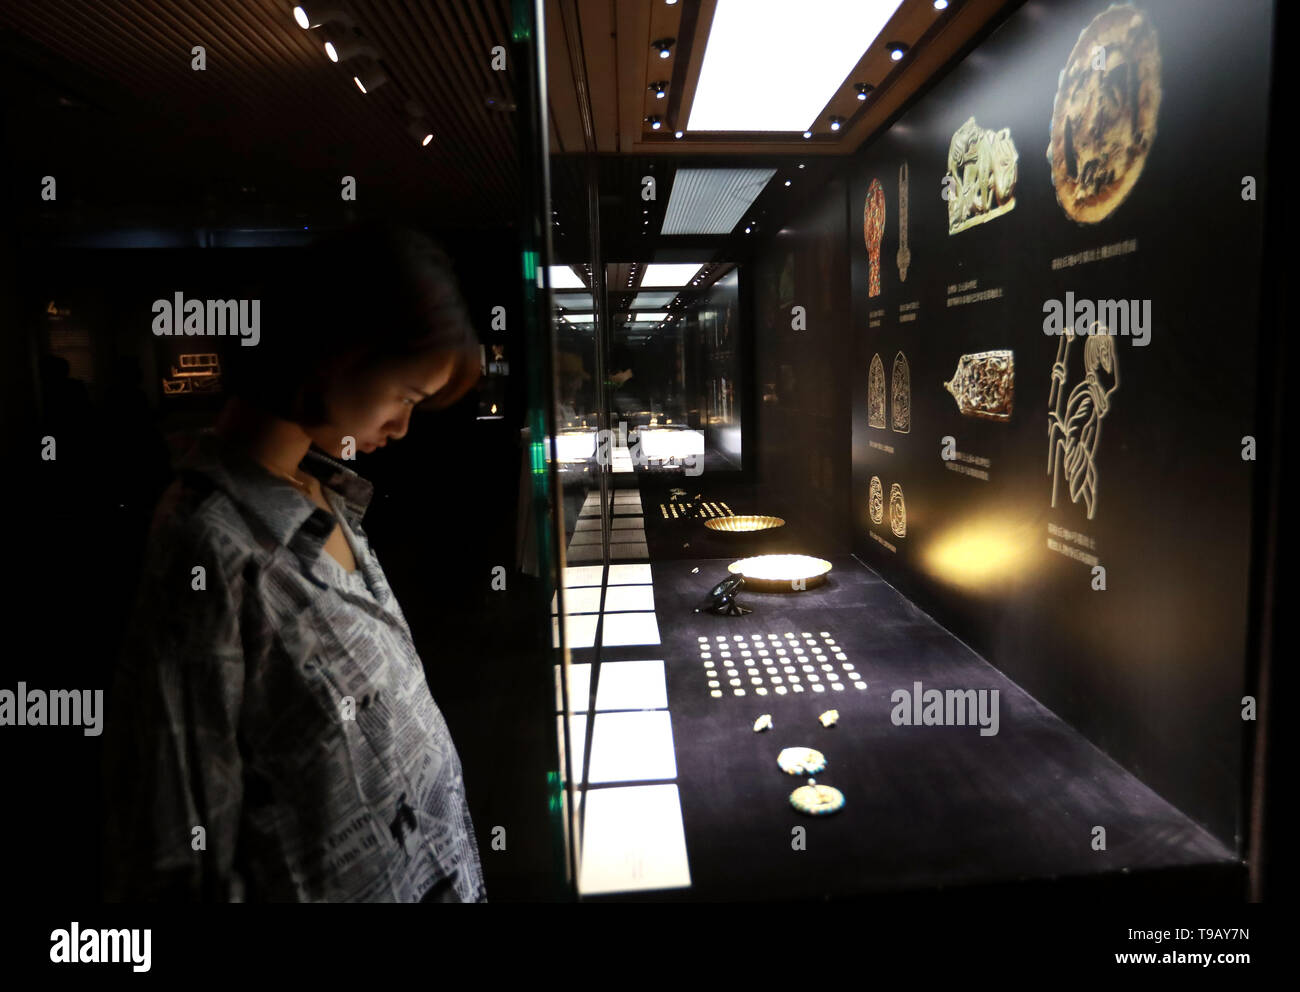 (190518) -- BEIJING, May 18, 2019 (Xinhua) -- A visitor views exhibits at an exhibition of Afghan national treasures at Tsinghua University Art Museum in Beijing, capital of China, May 17, 2019. The exhibition displayed a total of 231 pieces of the national treasures and relics from Afghanistan. China is holding a rich variety of exhibitions and activities on the culture of Asian countries and regions as well as exchanges among them. (Xinhua/Pan Xu) - Stock Image